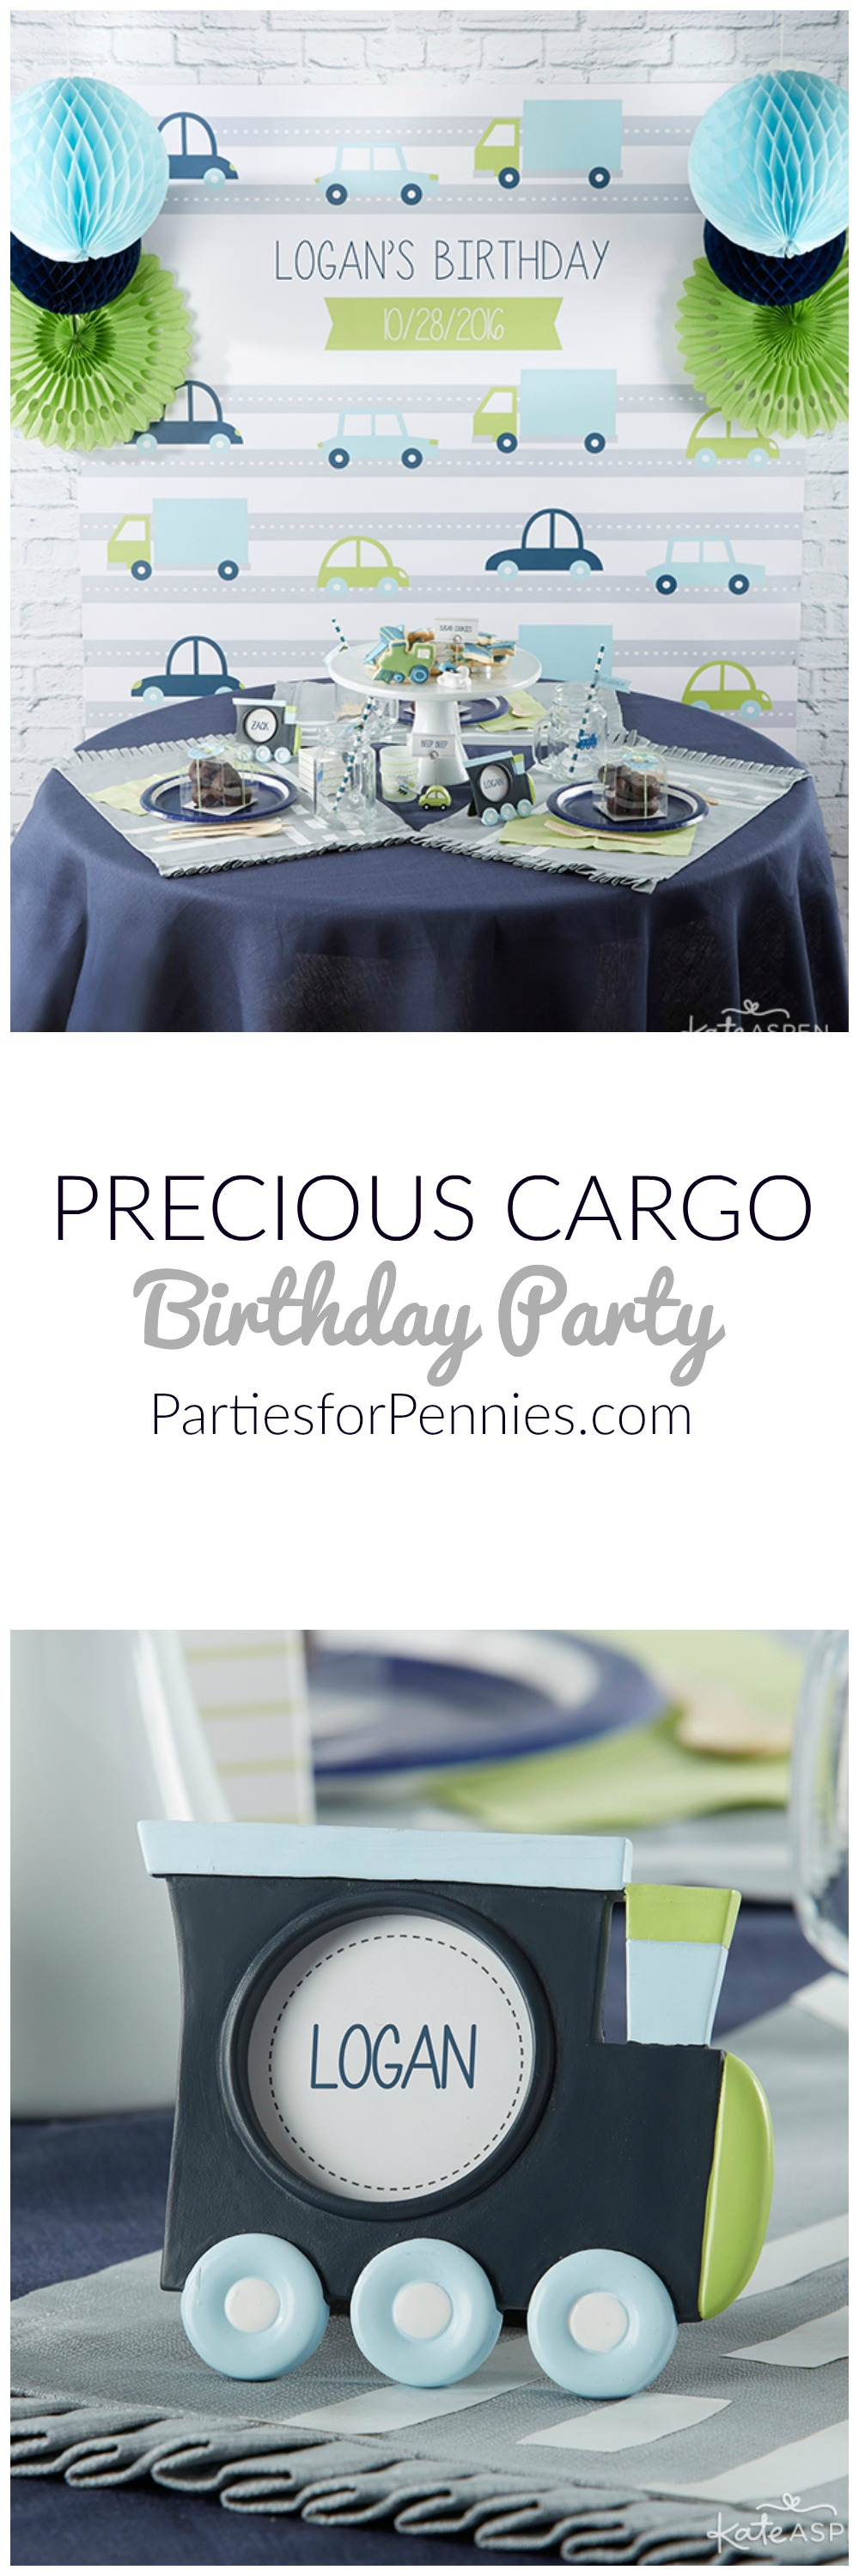 Precious Cargo Birthday Party from Kate Aspen | PartiesforPennies.com | Transportation Party, Plane Party, Train Party, Car Party, 1st Birthday Party